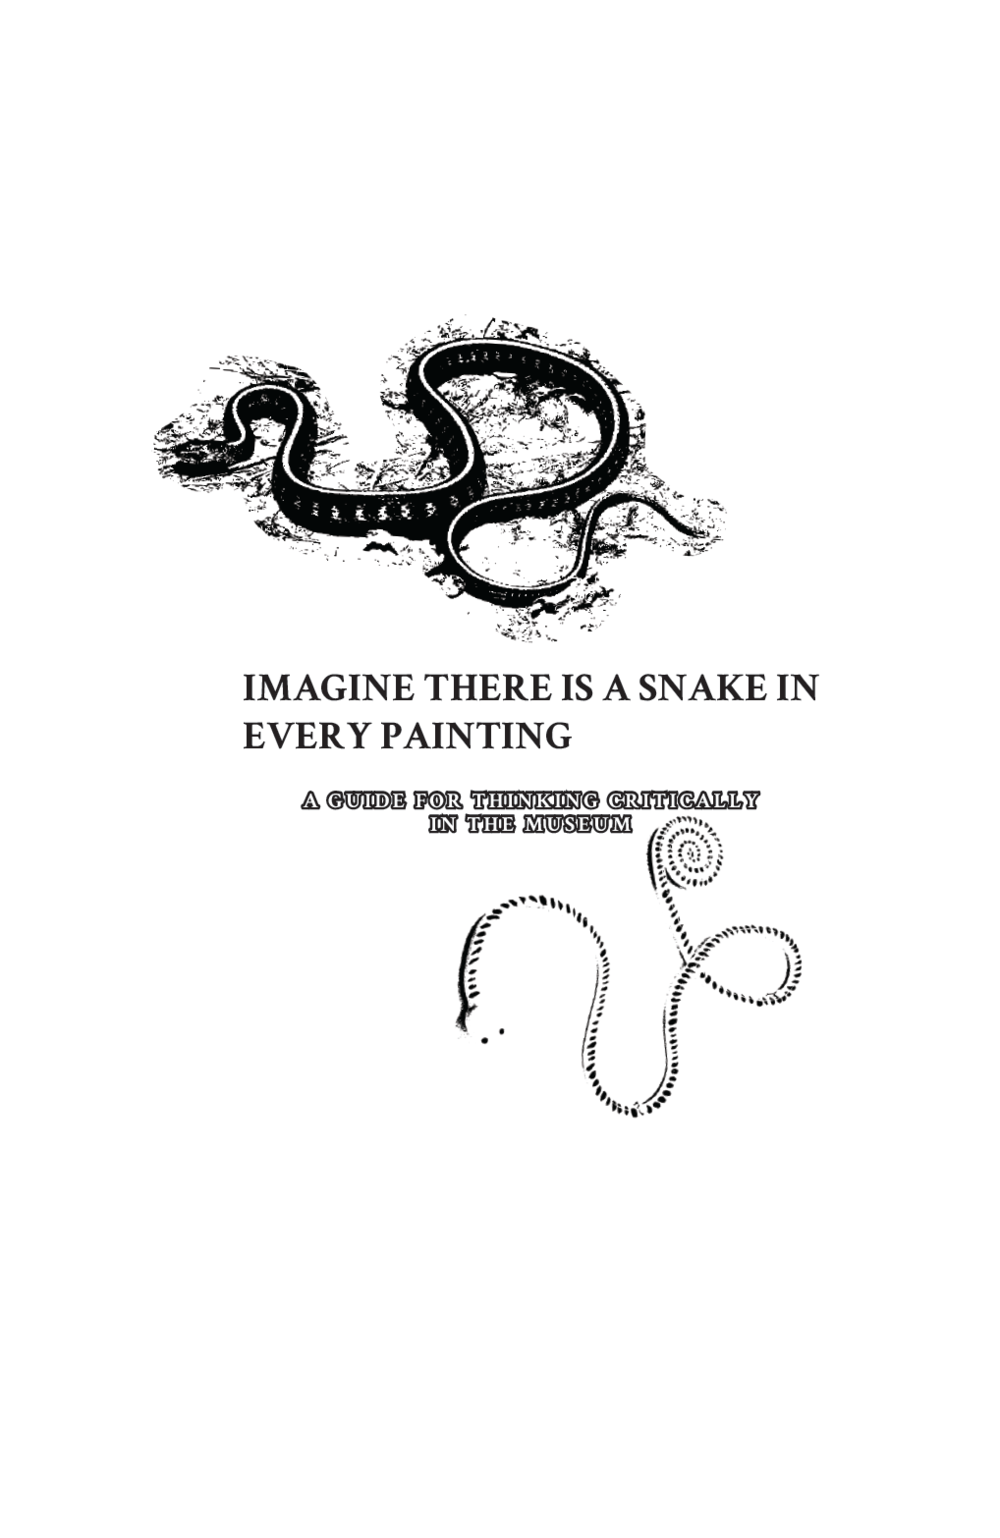 IMAGINE THERE IS A SNAKE IN EVERY PAINTING: A Guide for Thinking Critically in the Museum , Essays and prompts by Roz Crews, published by Sunday Painter Press, August 2017.   $15 (available)    This booklet was designed as part of an exhibition inside Sarah Wolf-Newland's faculty office at Portland State University's   University Studies Department  . The booklet offers ten ways to engage with the most conservative museum near you.